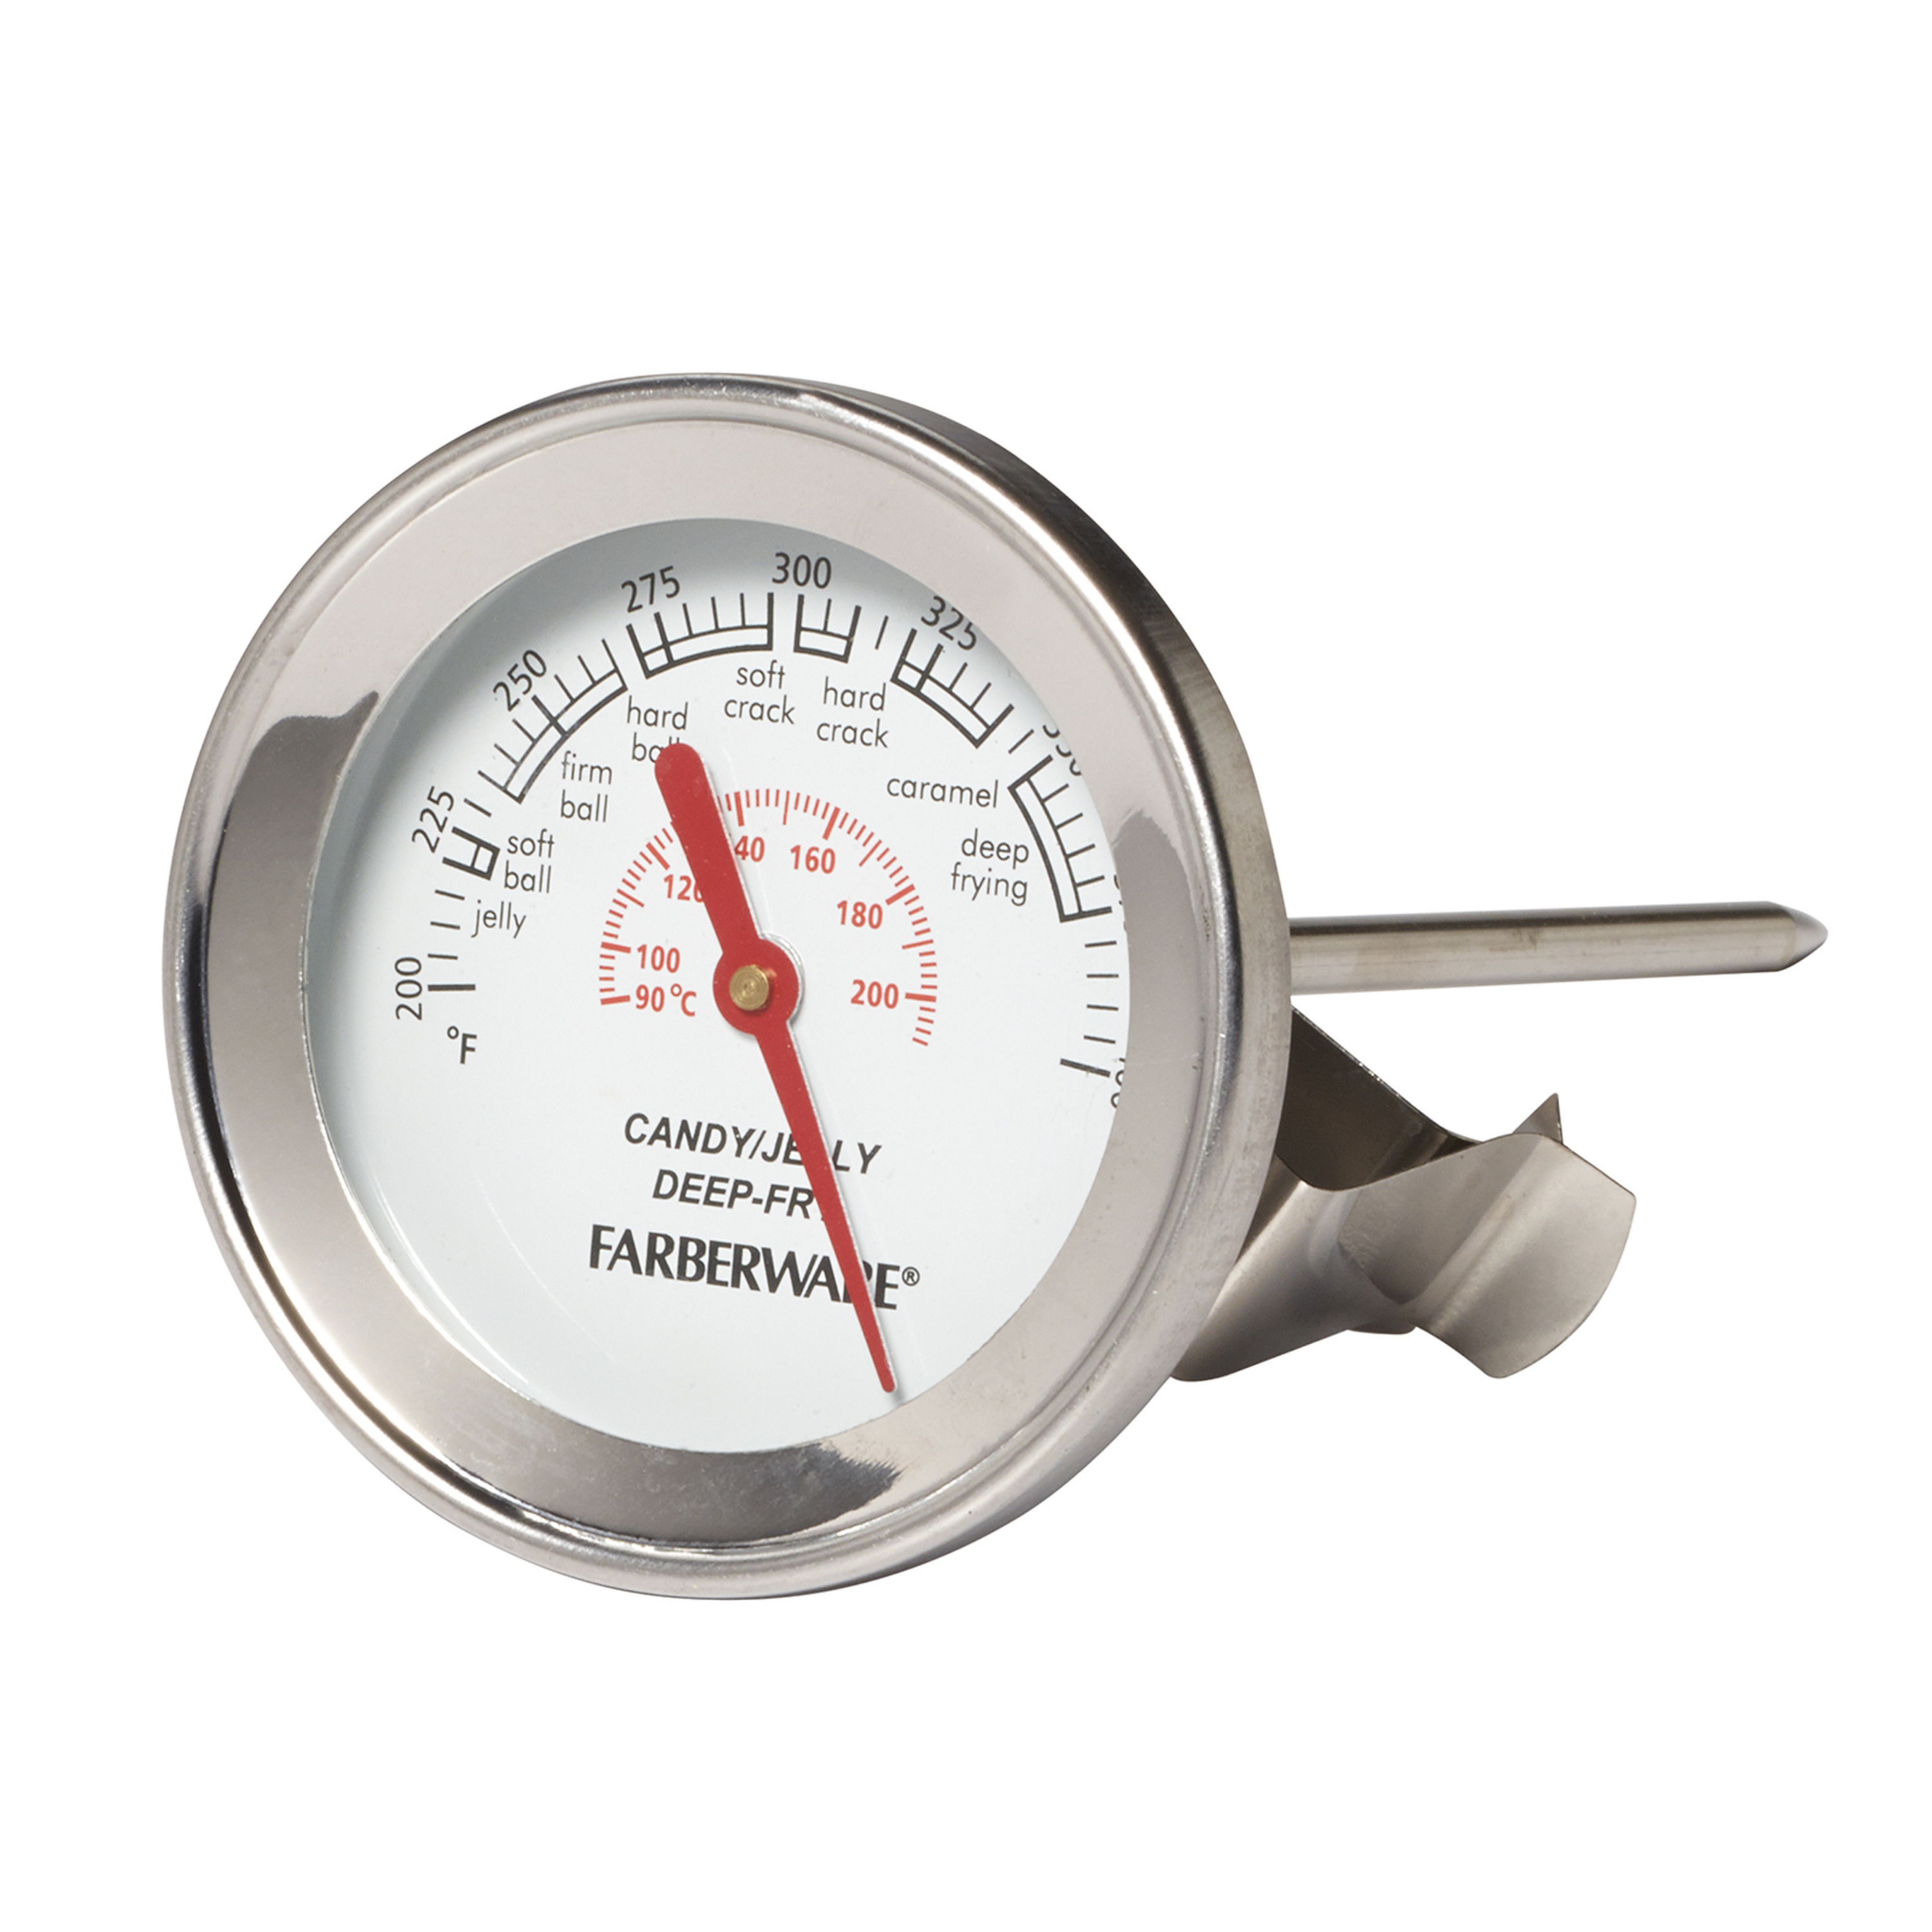 Farberware Protek Candy and Deep Fry Thermometer, Easy Read Display